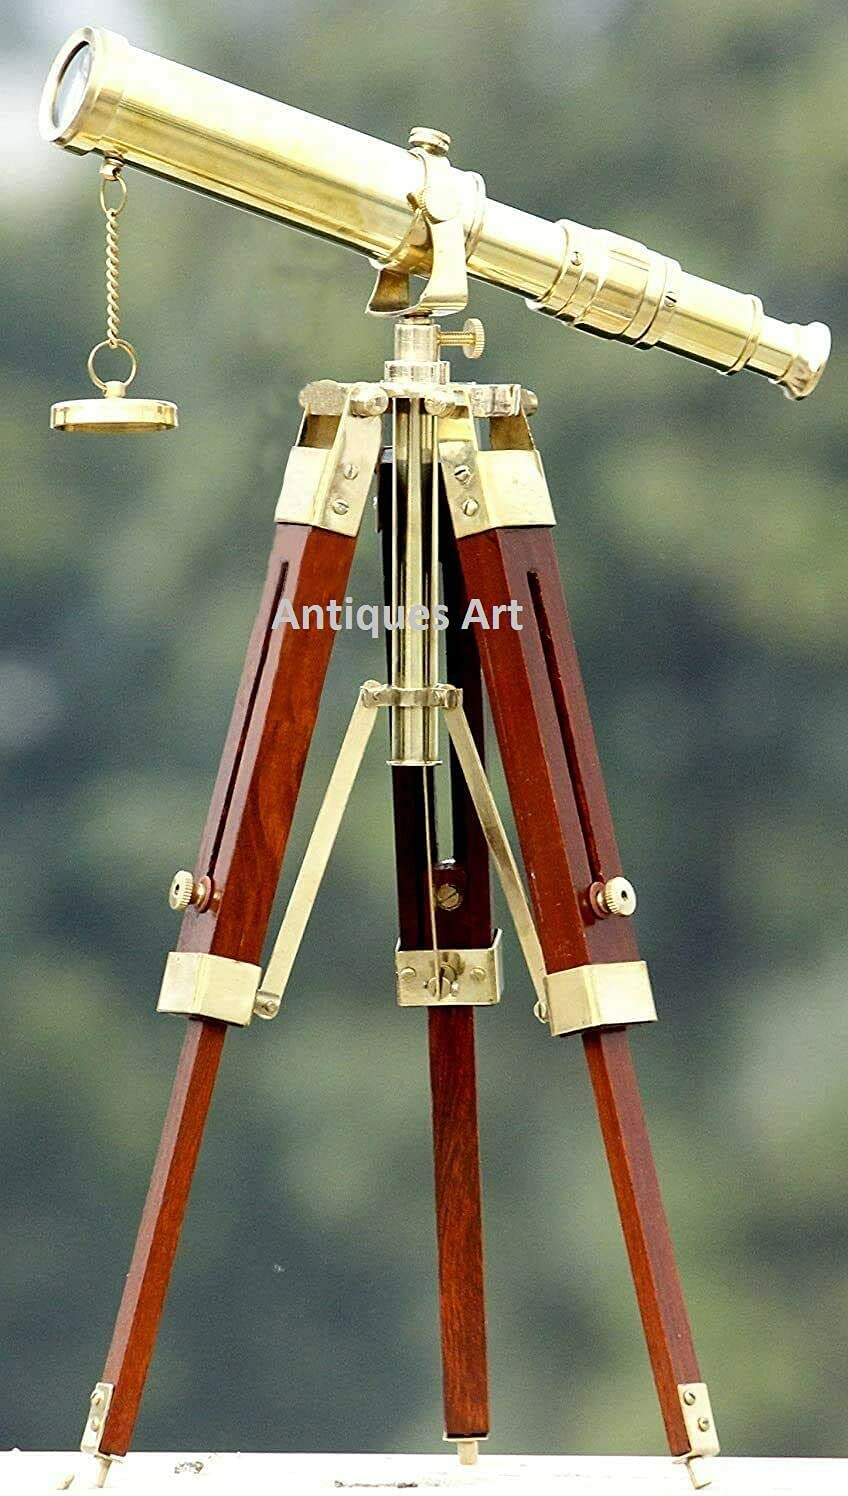 Vintage Brass Nautical Telescope 10 Stan with Tripod Inch We OFFer at cheap prices Wooden sold out